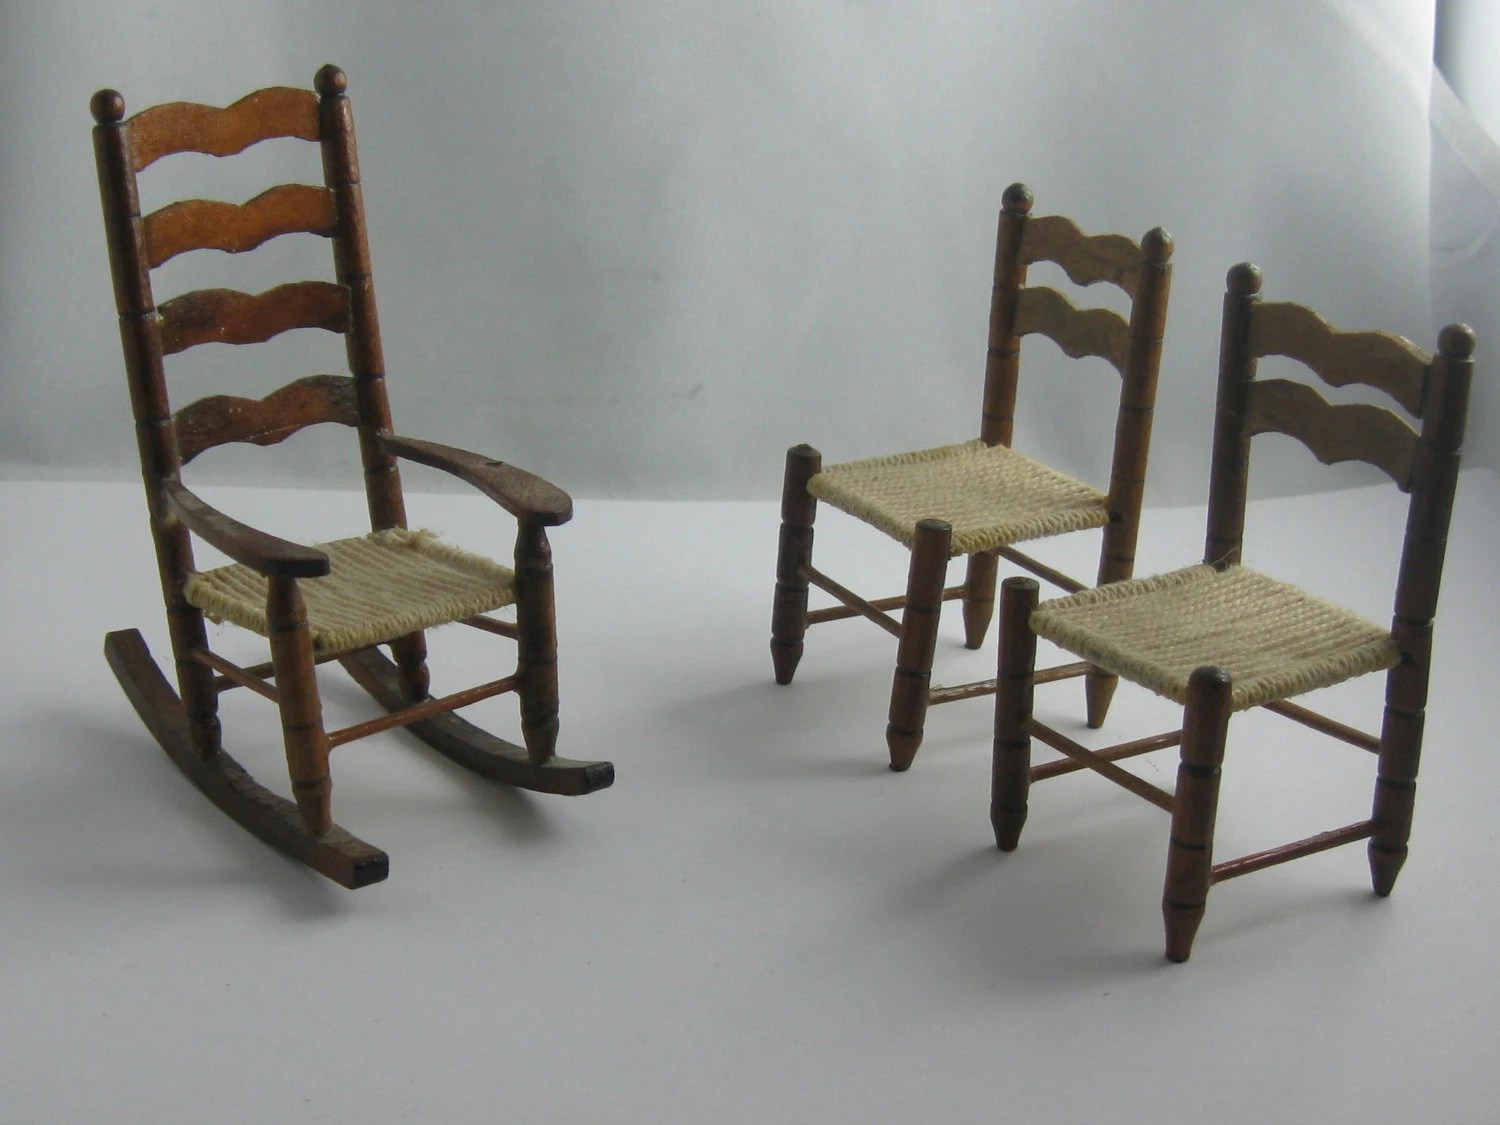 Miniature dollhouse furniture: a rocking chair and 2 chairs made of ...